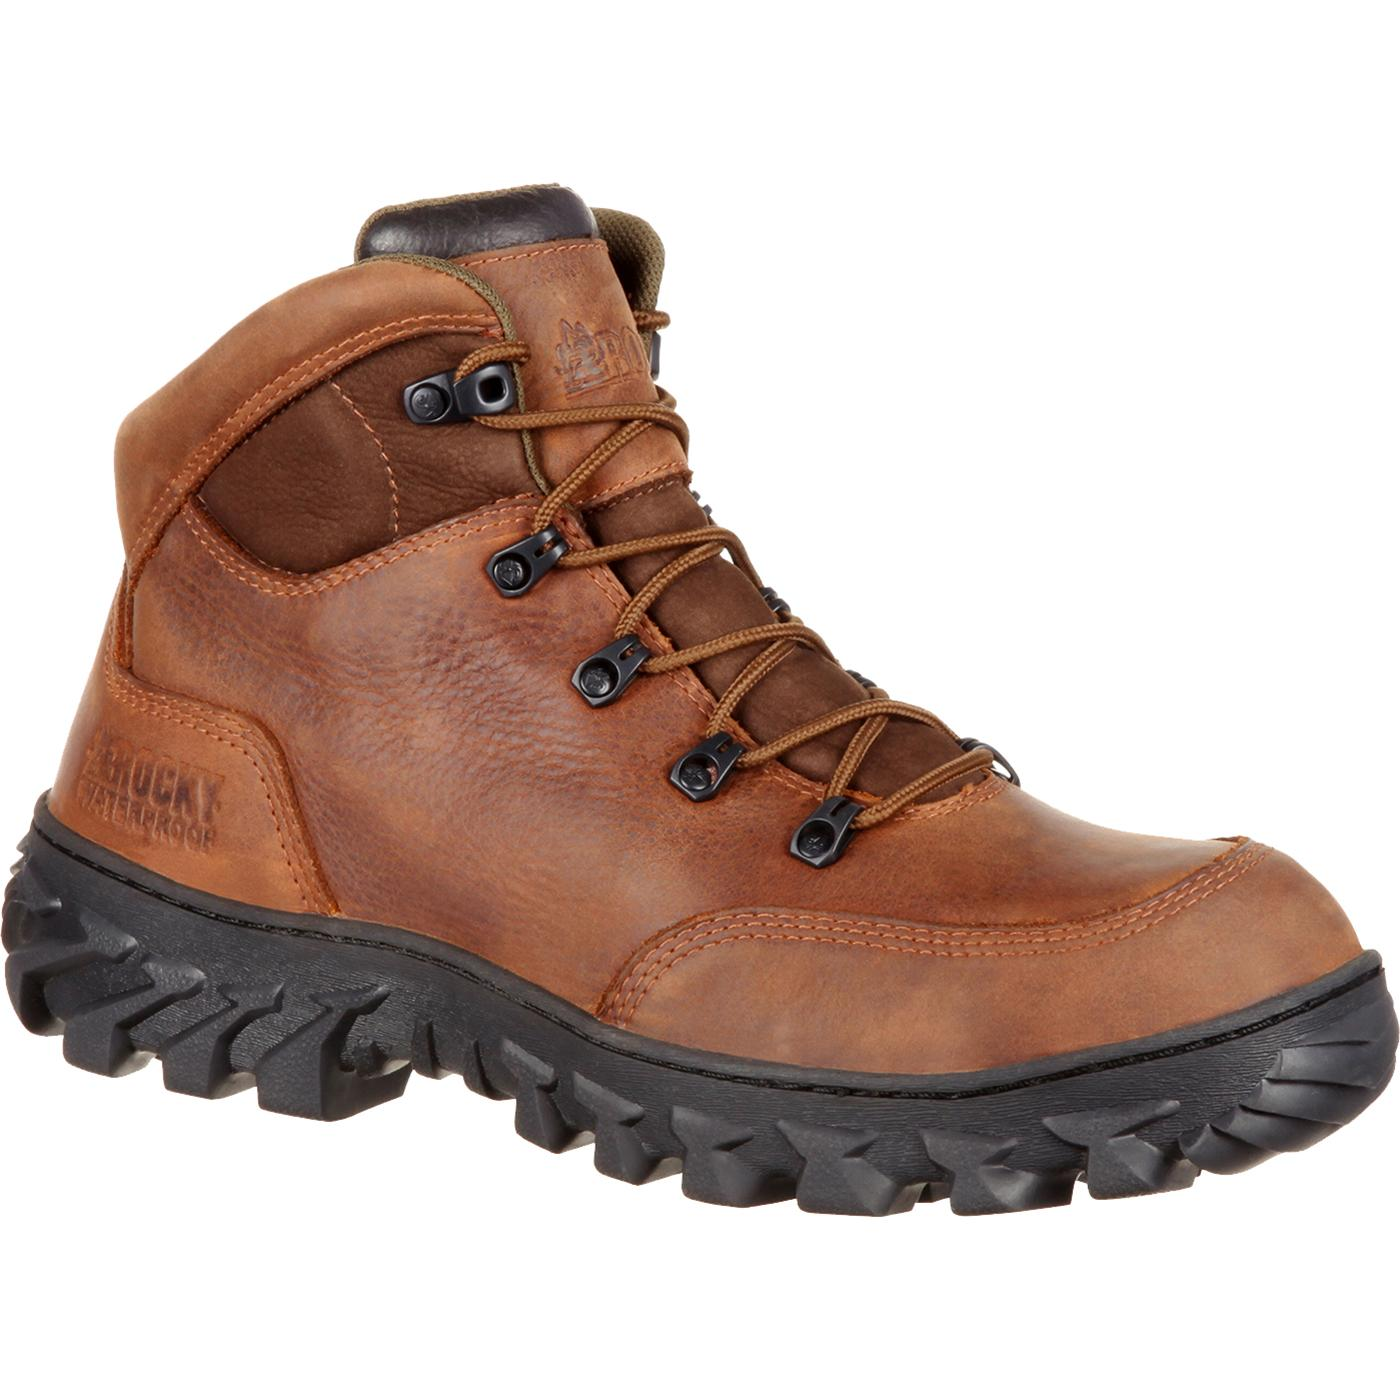 ba7fe856774 Details about Rocky S2V Composite Toe Waterproof Work Boot Guaranteed Rocky  Waterproof